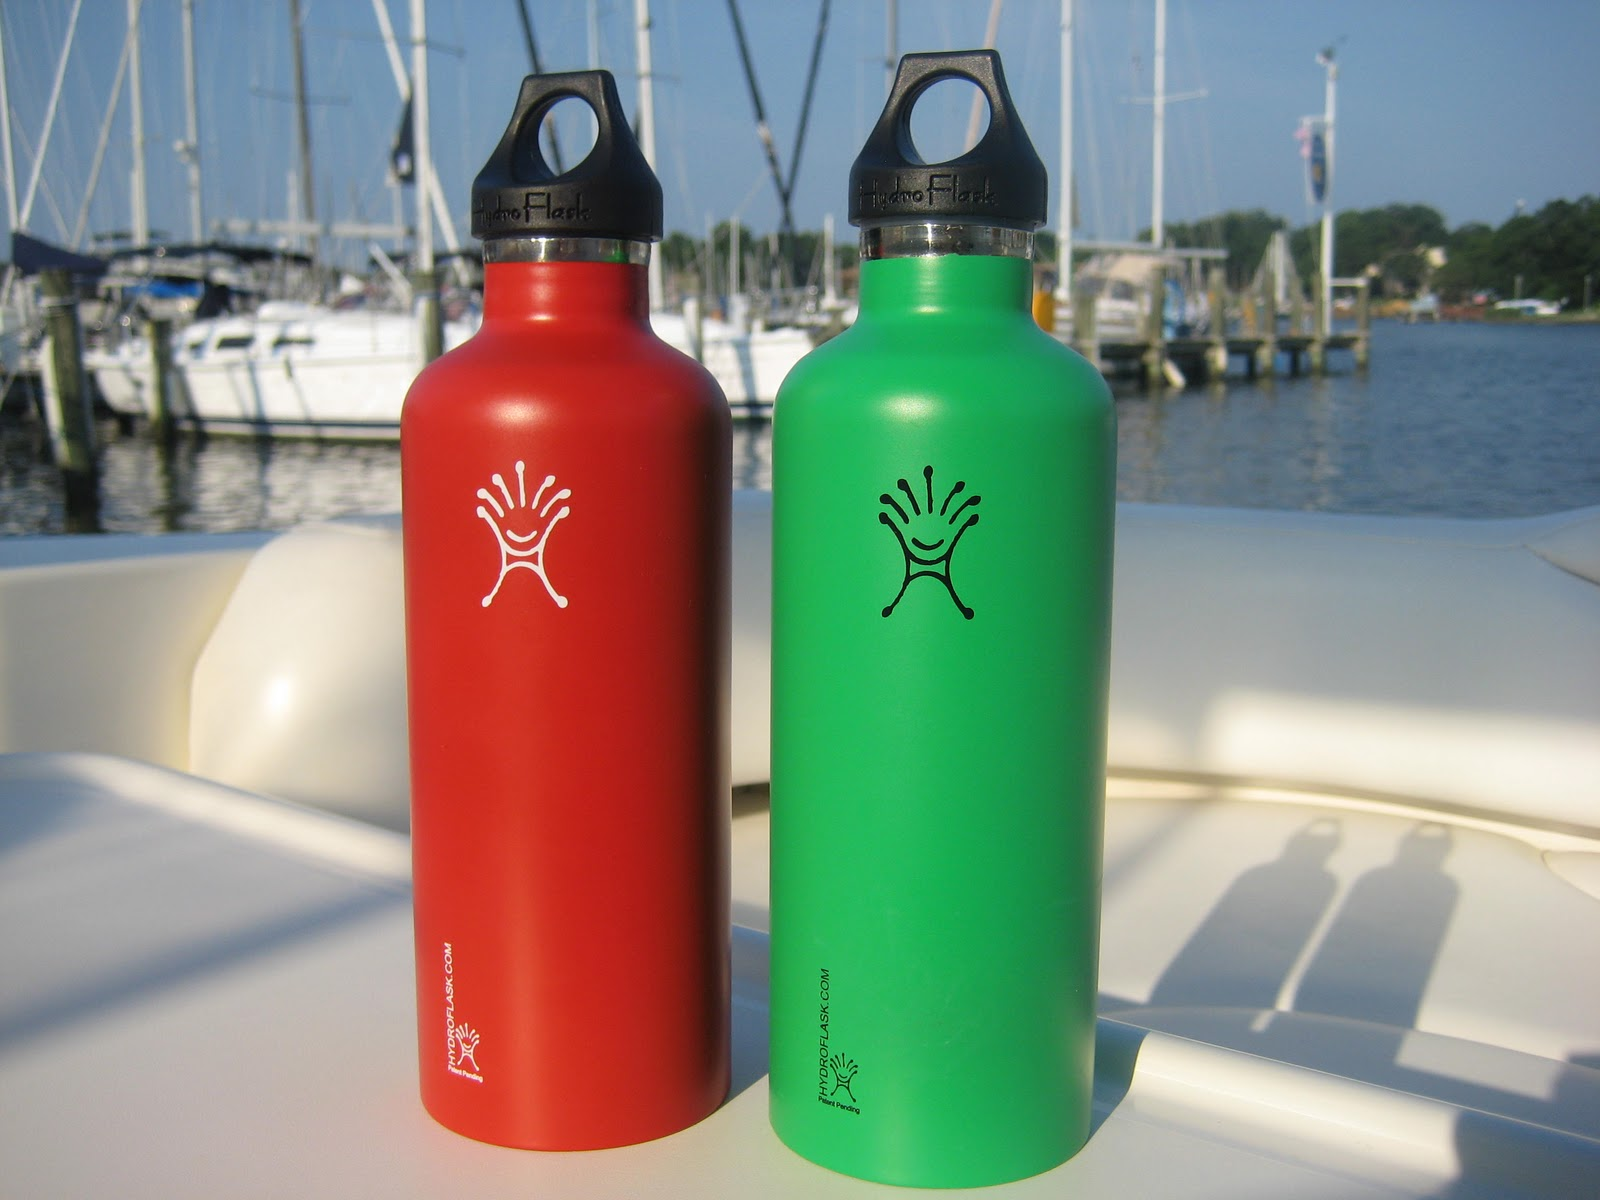 Hydroflask review